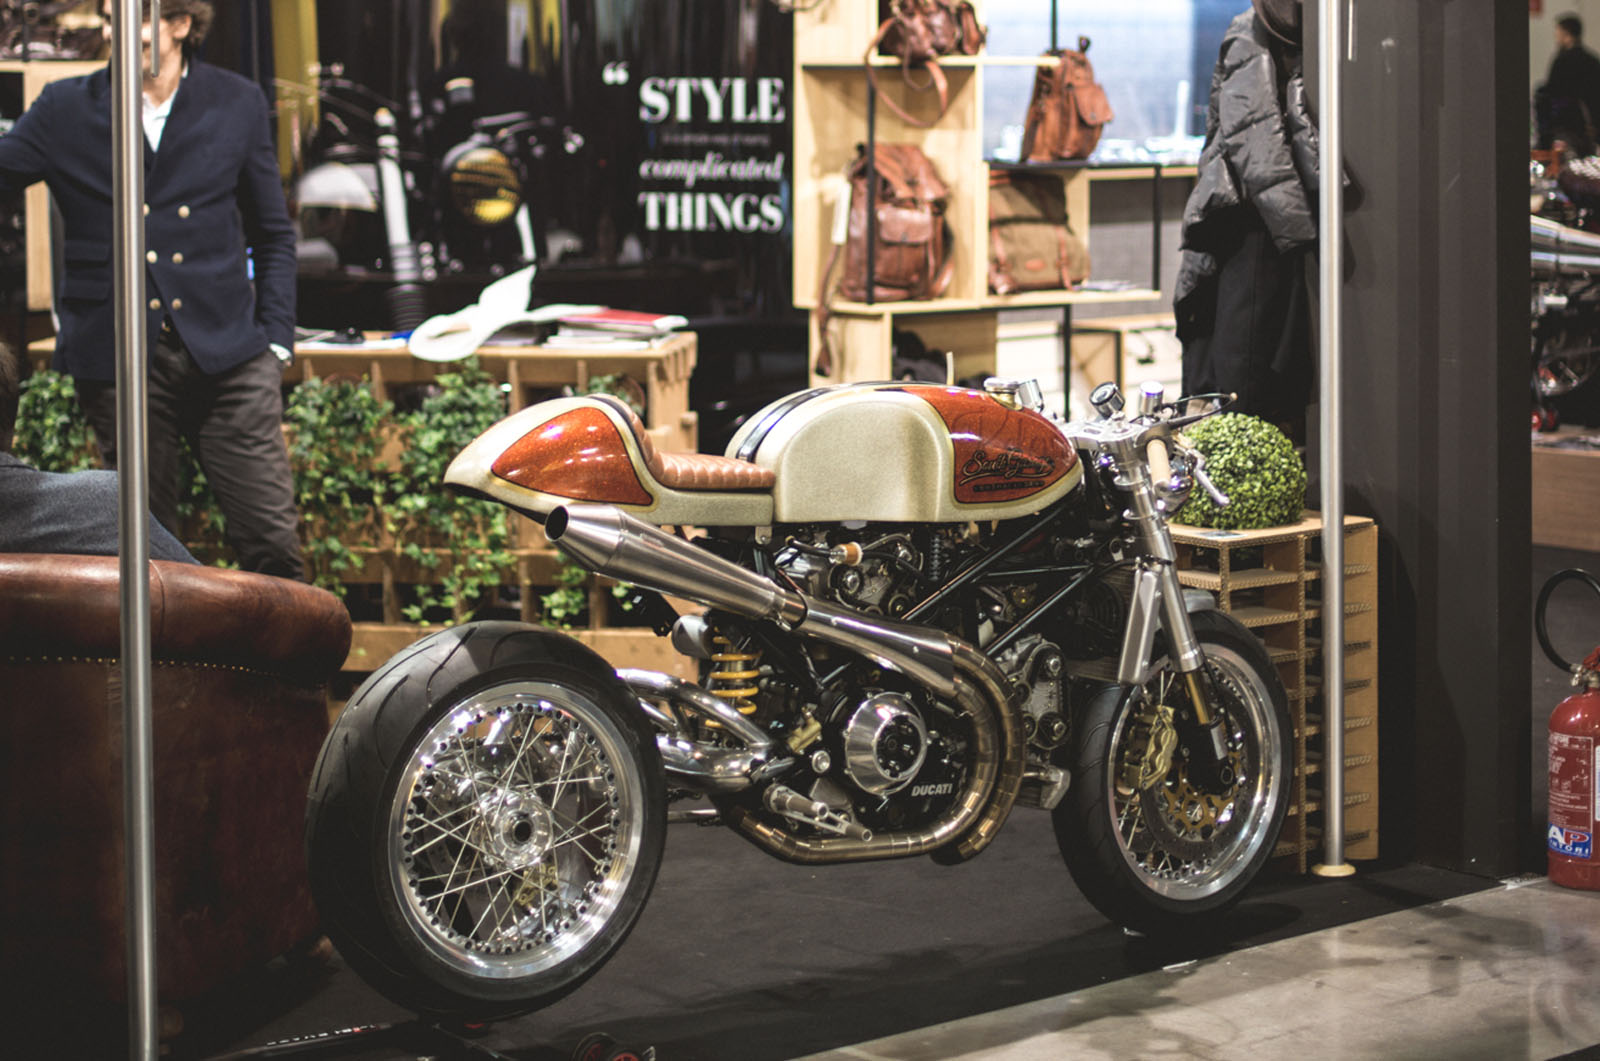 Ducati Monster S4R Kelevra Cafe Racer By South Garage At The EICMA 2015 Picture From Bitly 21kLfaK